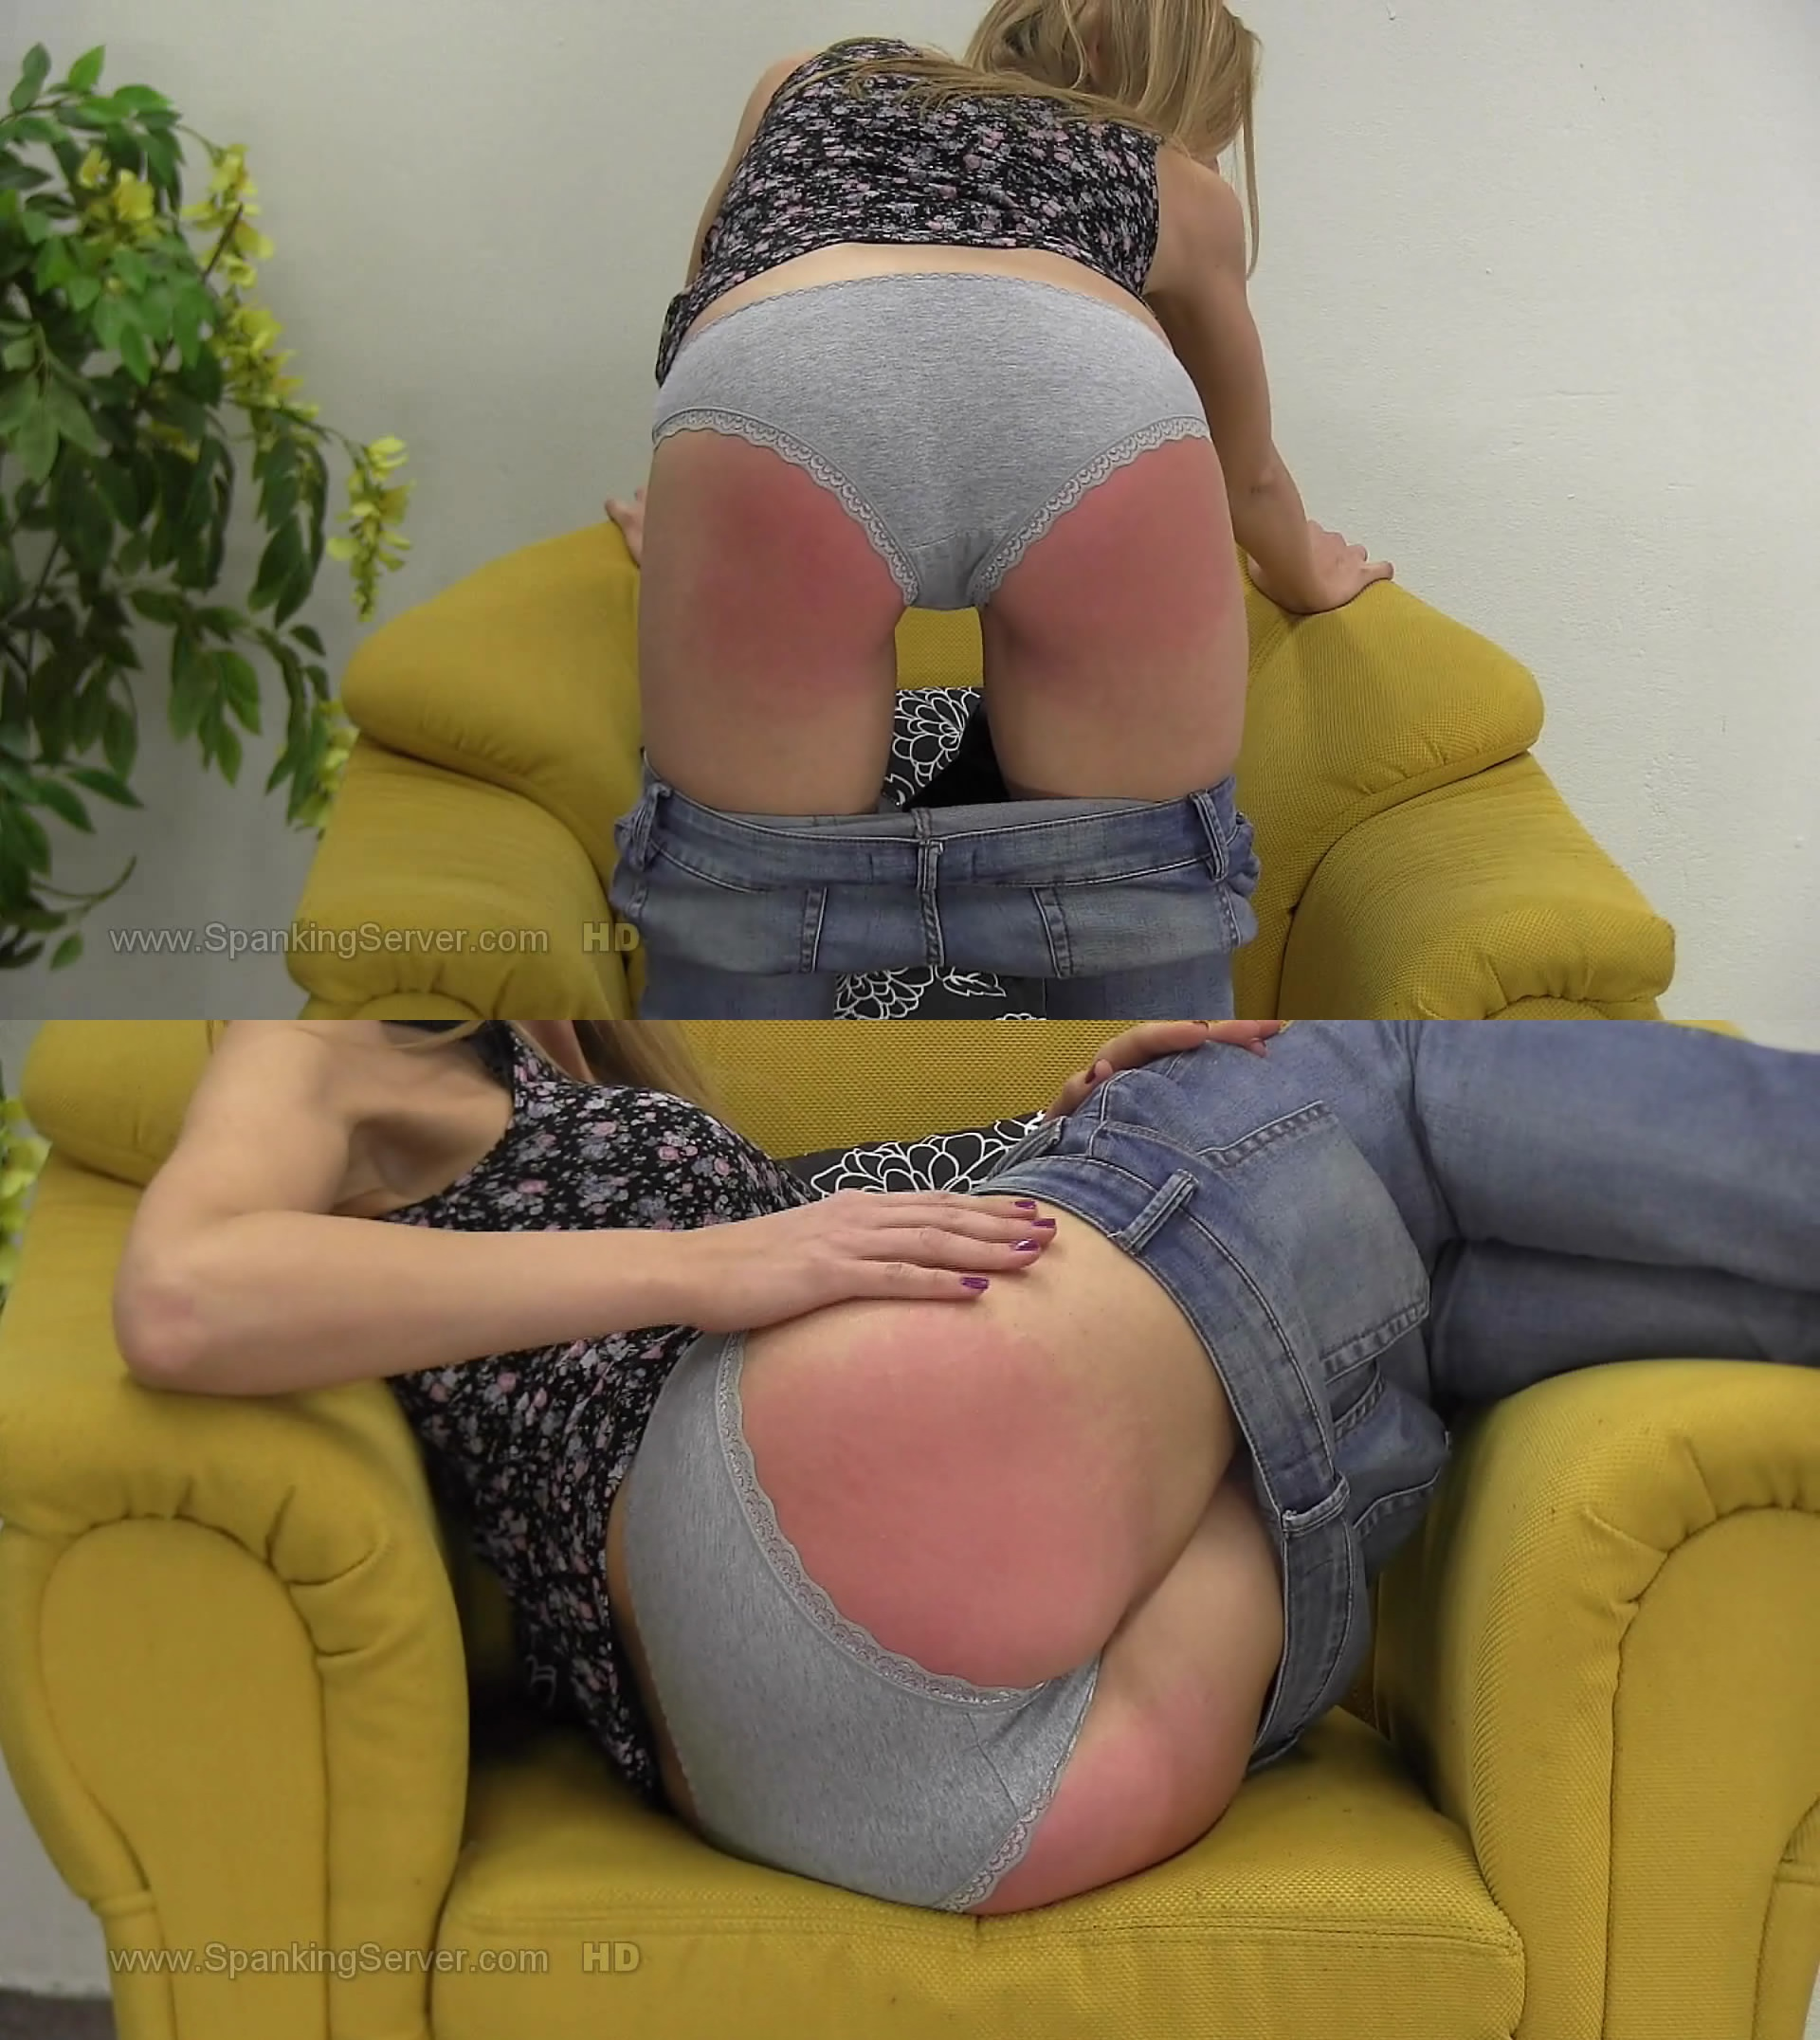 Spanking Server – MP4/Full HD – Luca Bella 0119